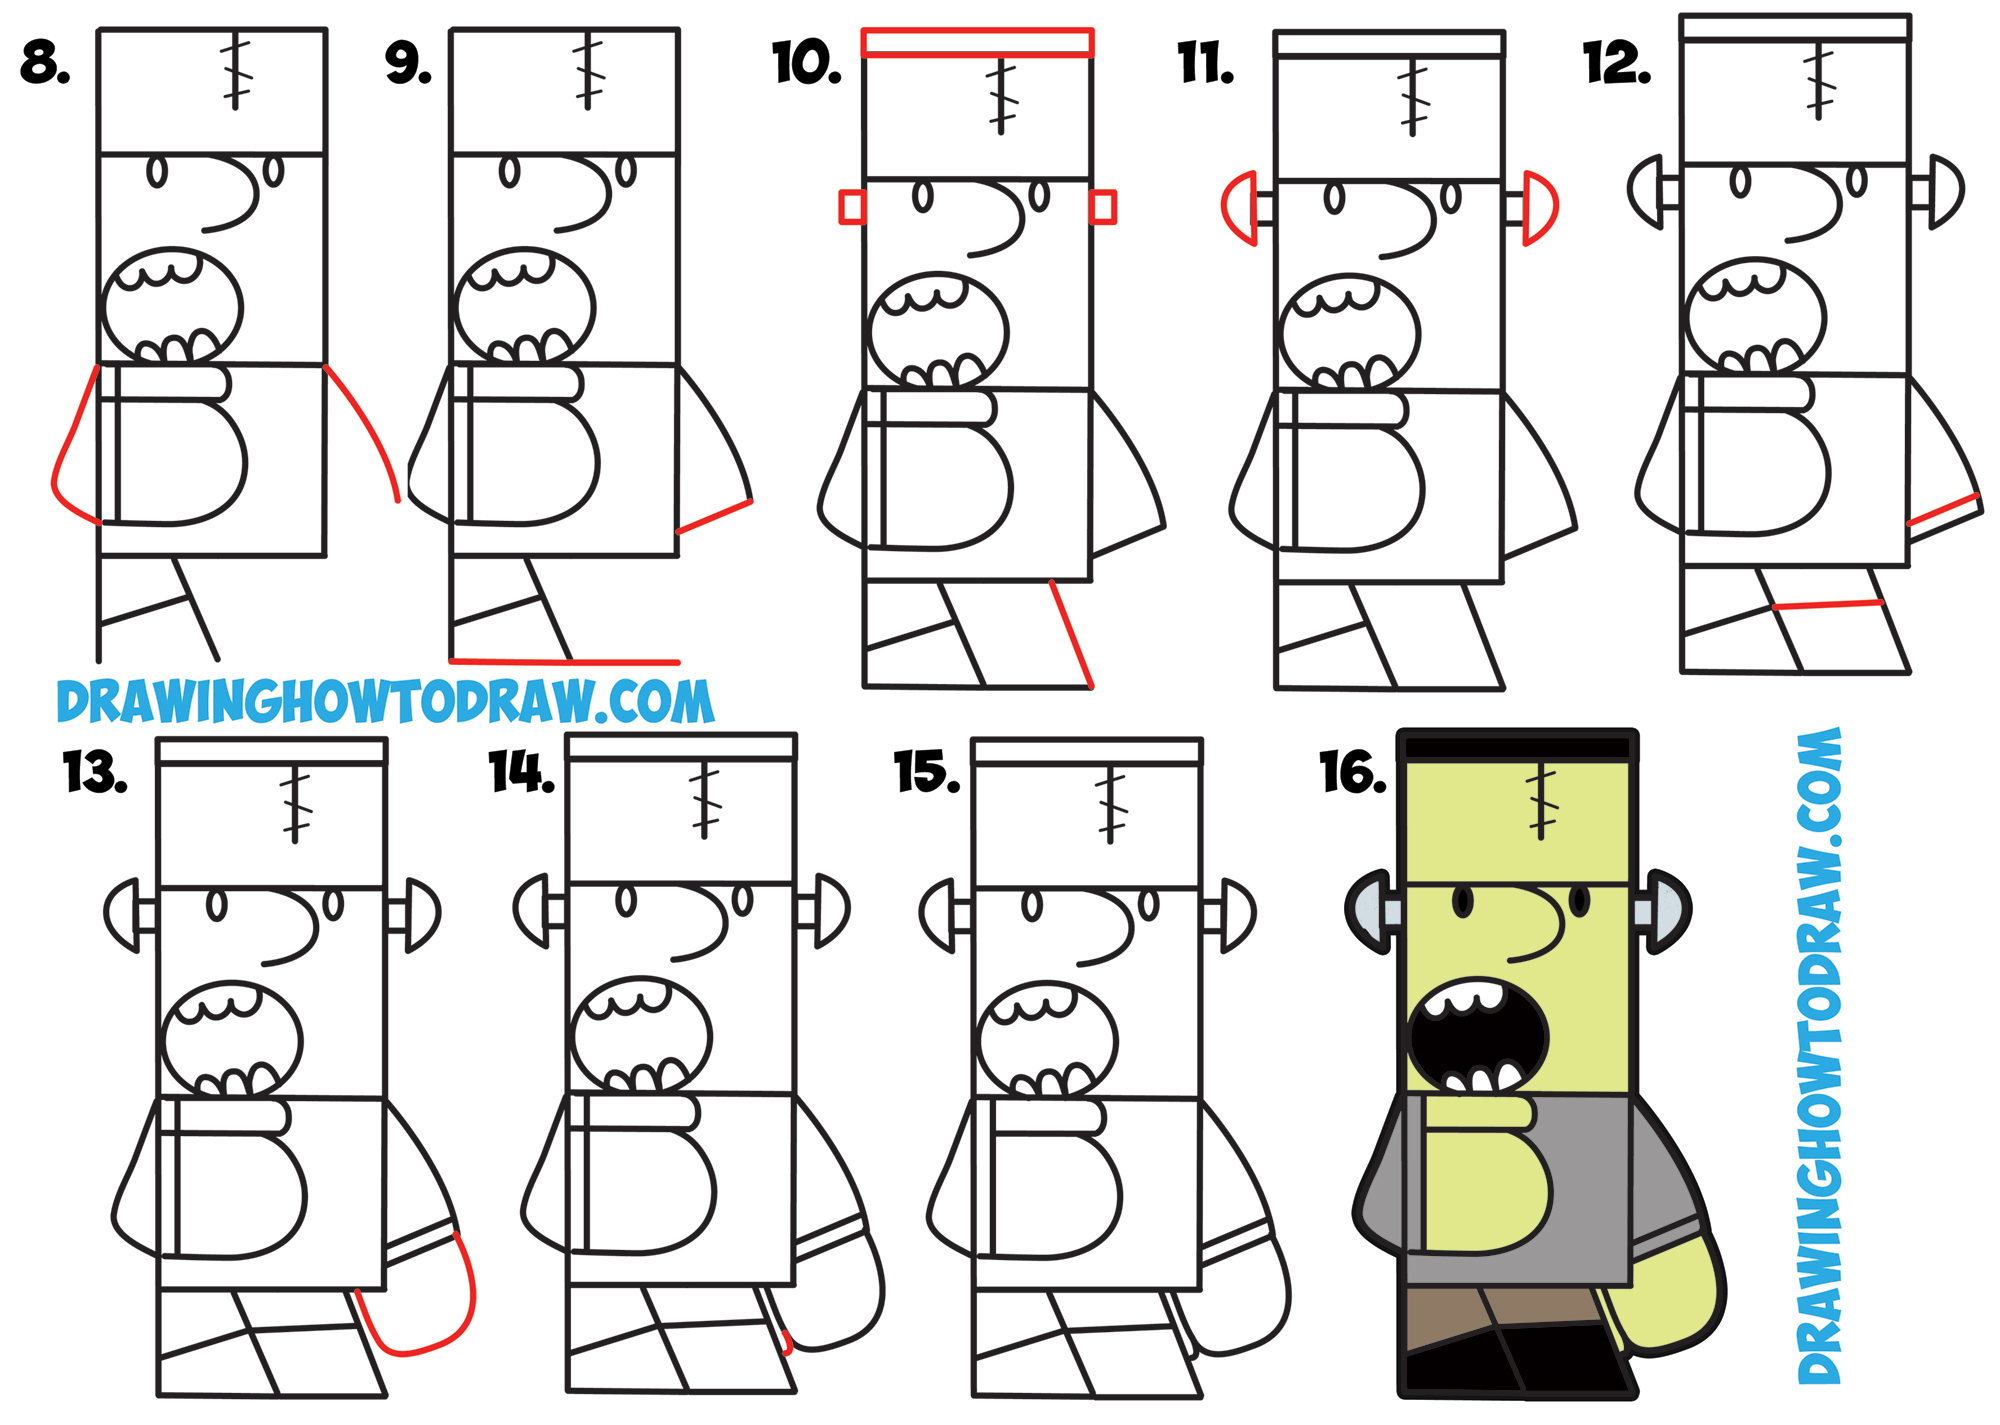 Uncategorized Easy Halloween Drawings Step Step how to draw cartoon frankensteins monster from frank word learn toons simple steps drawing